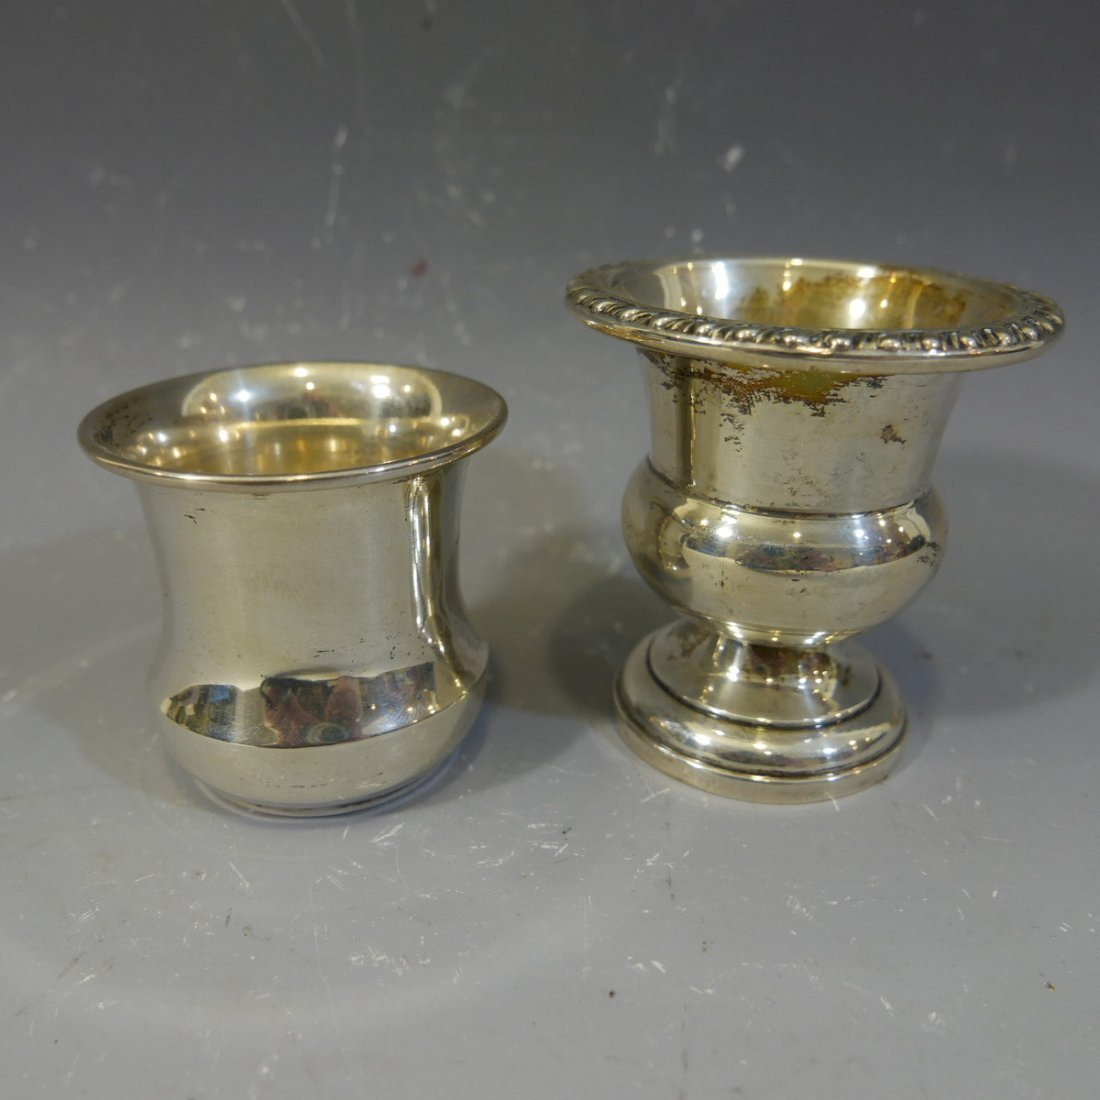 TWO STERLING SILVER CUPS - 90 GRAMS